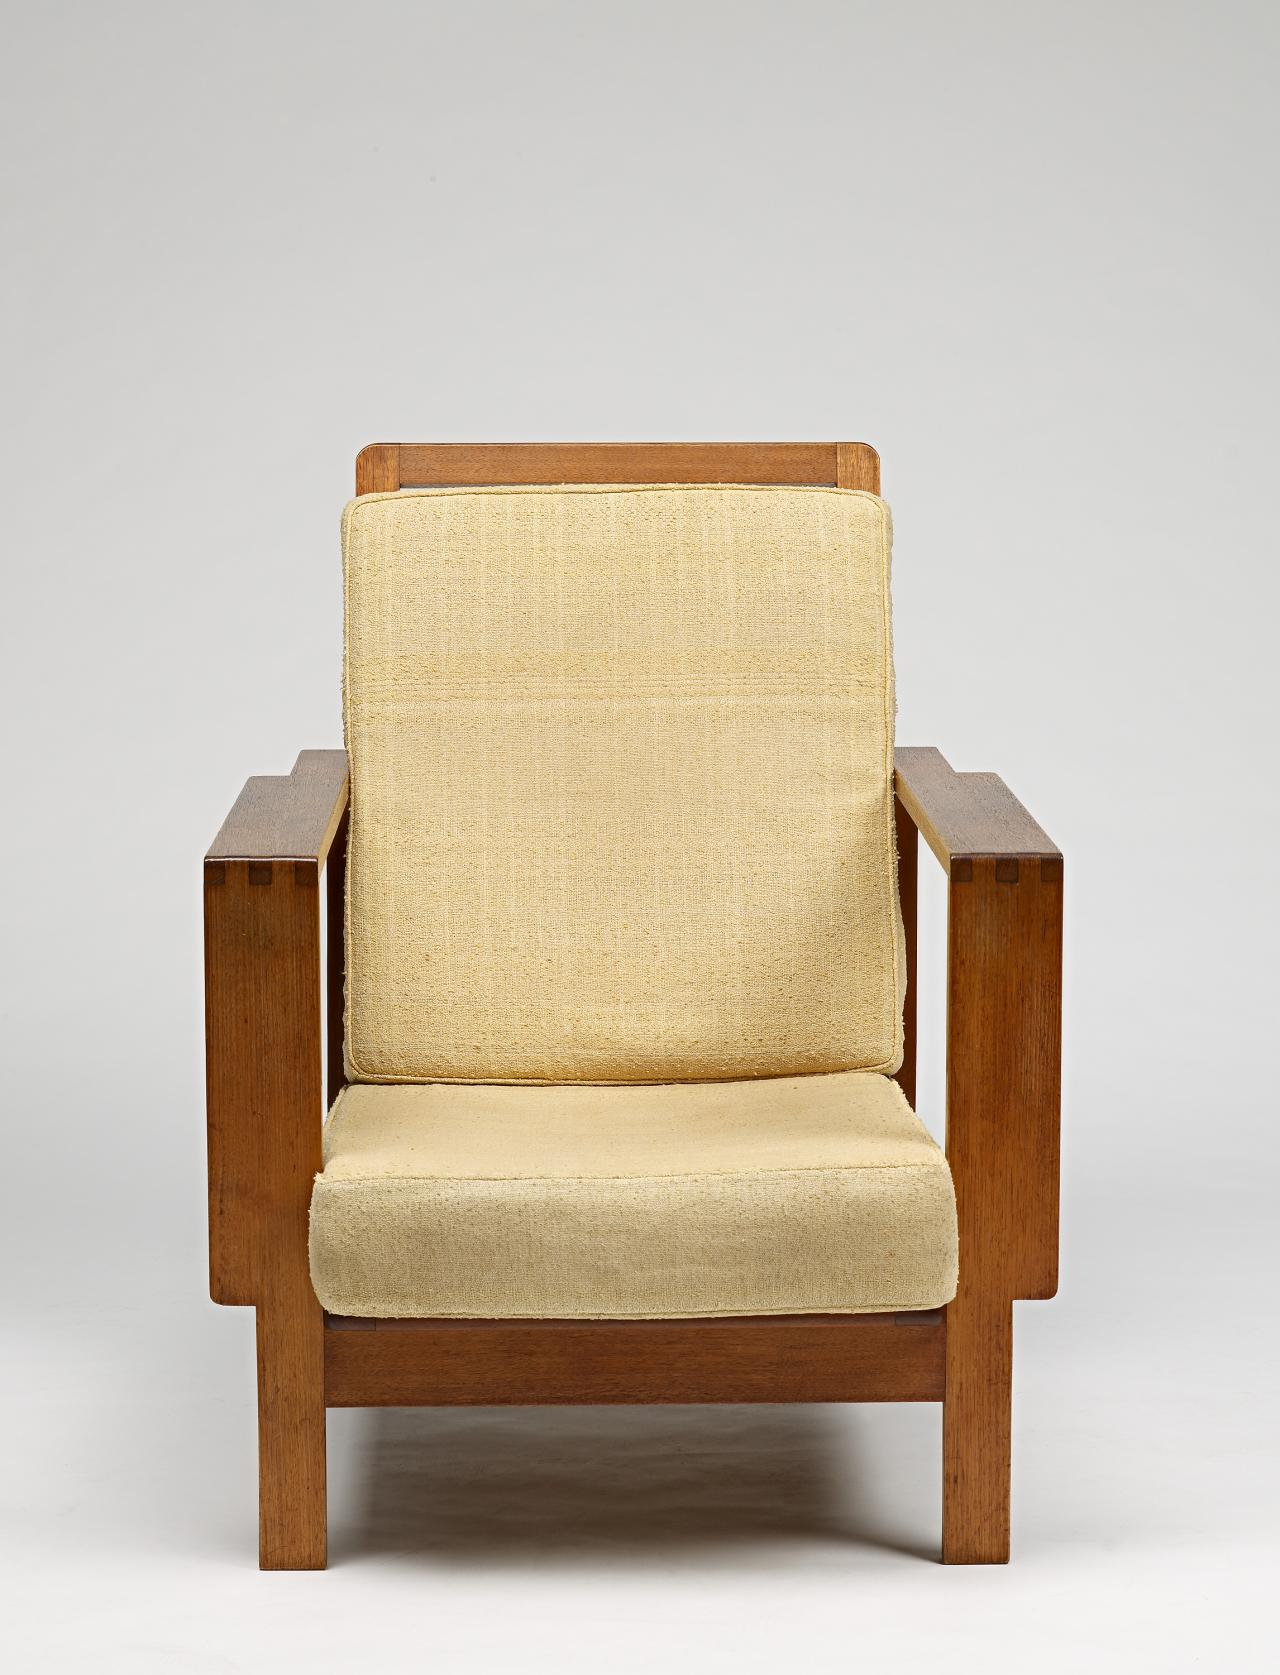 Unit range, armchair